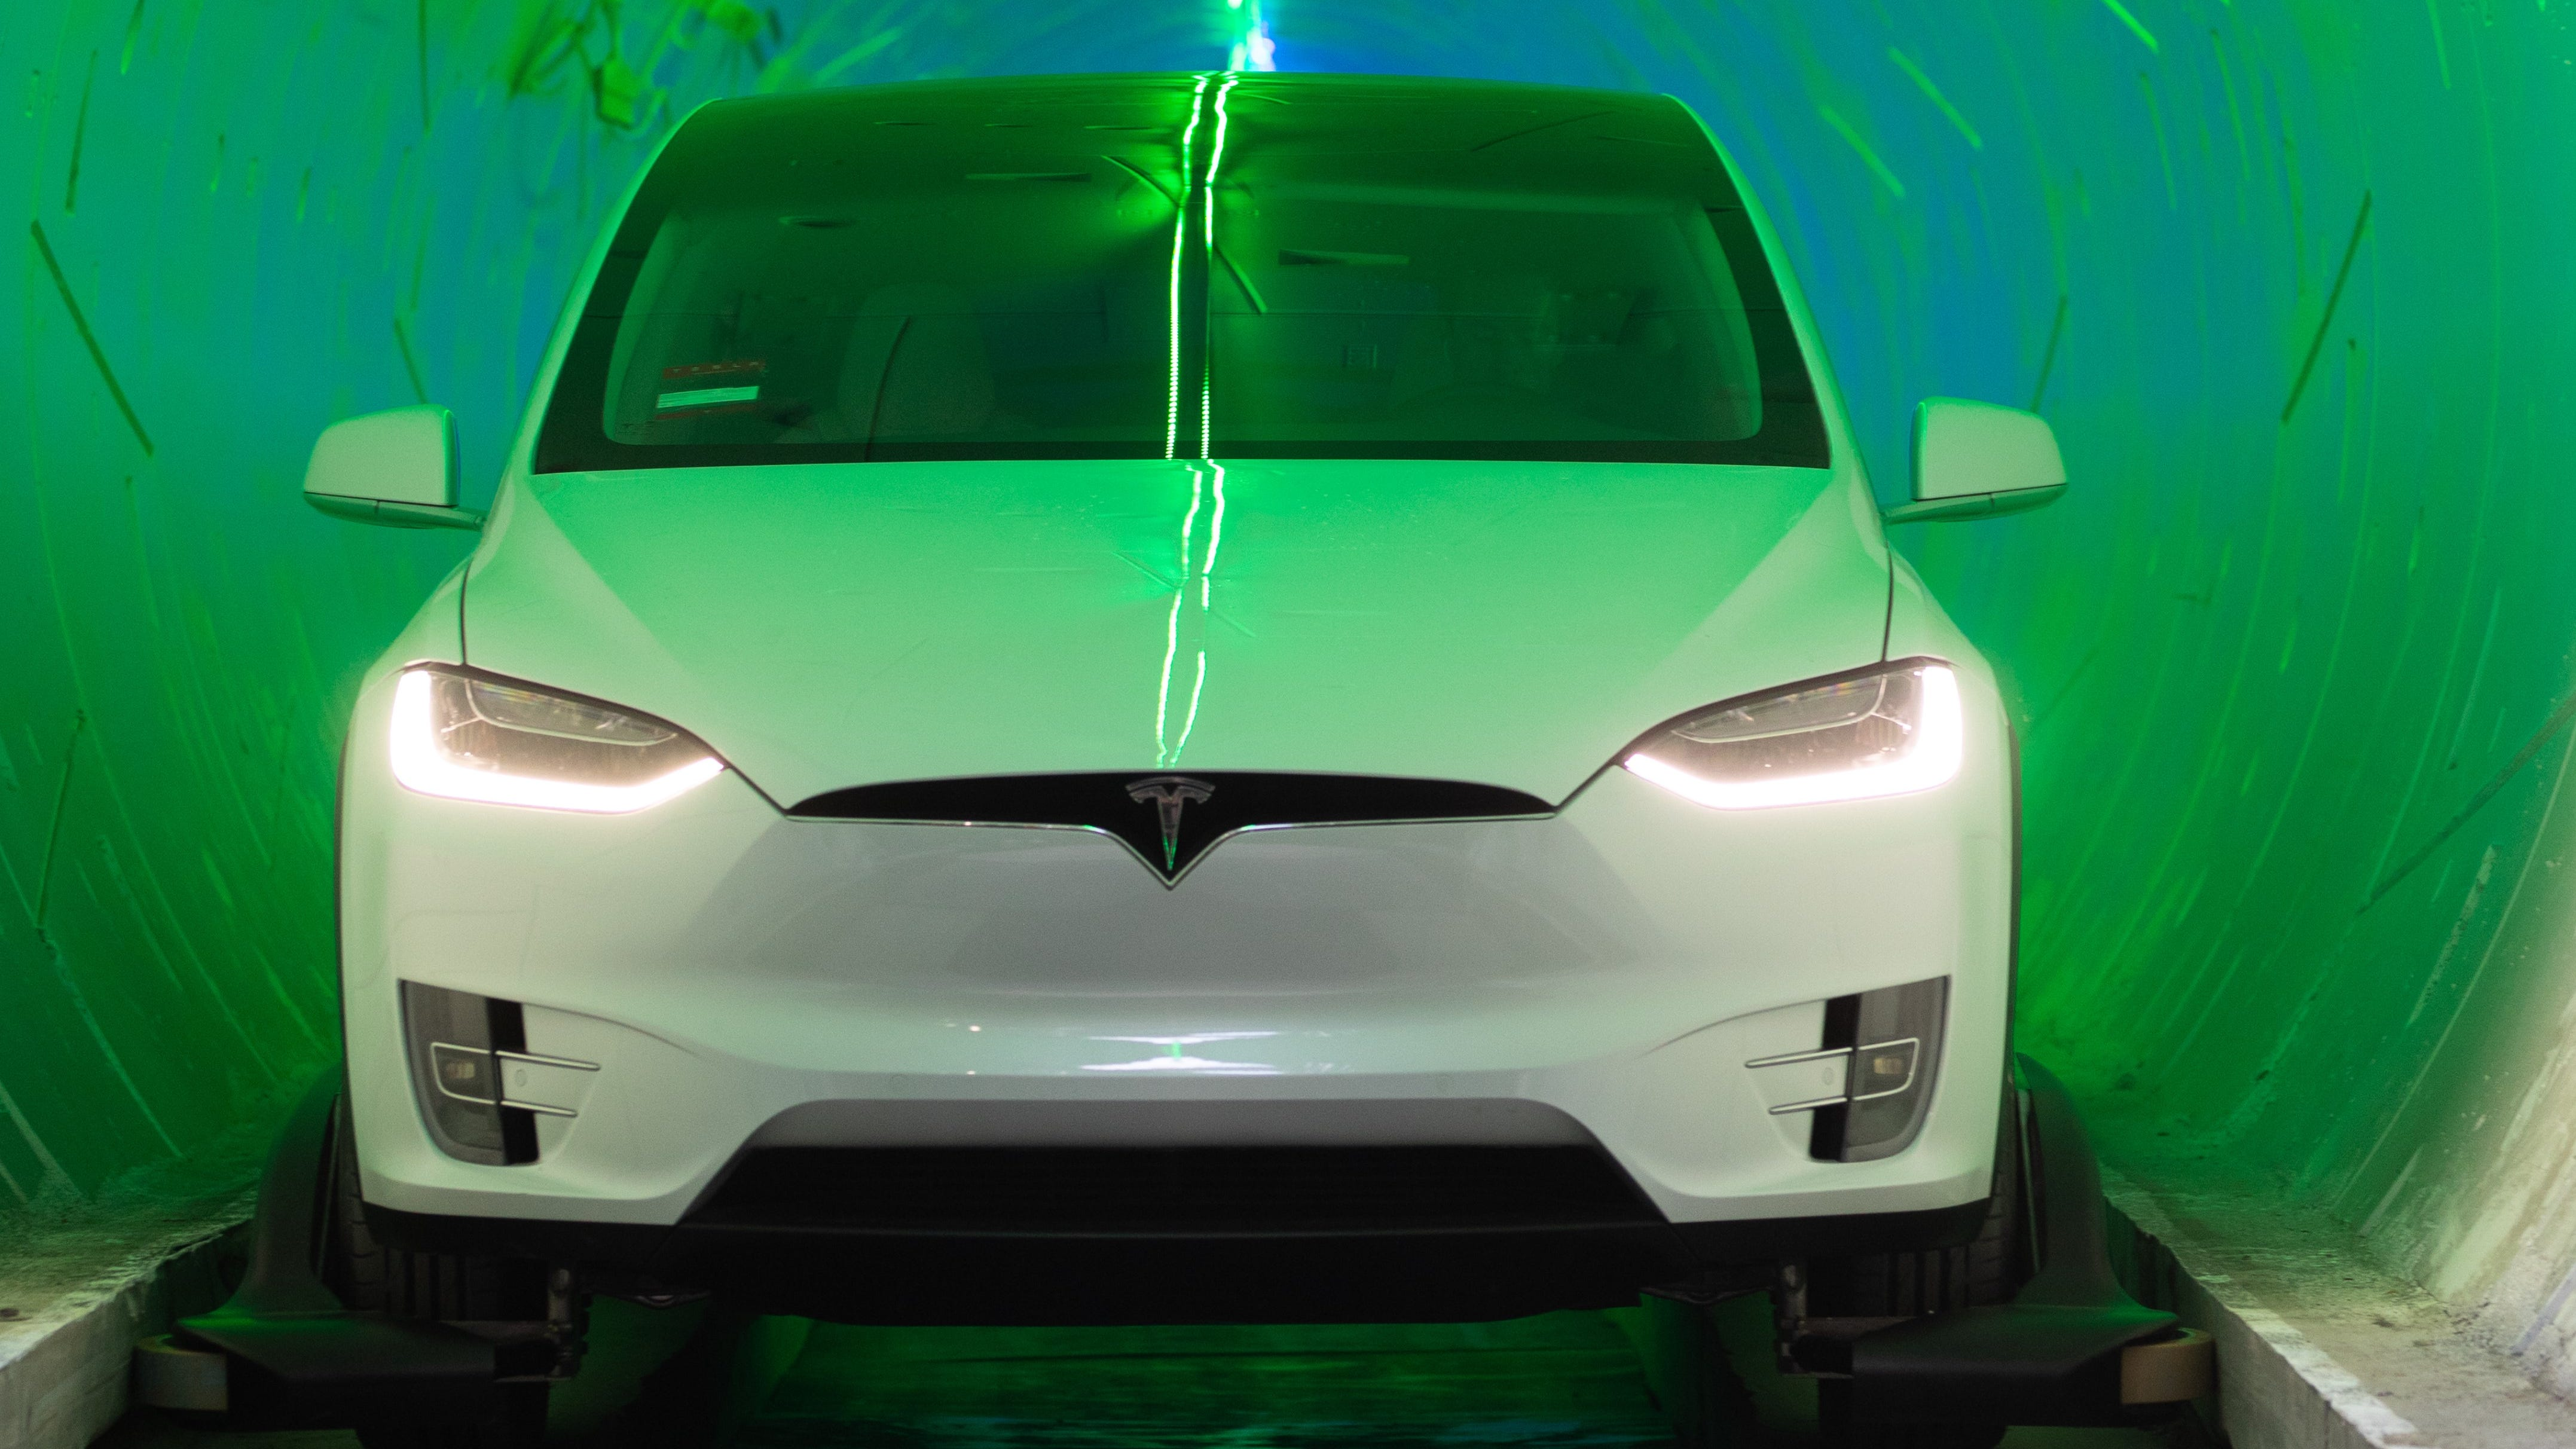 A Tesla Model X SUV in the Boring Co. tunnel in Hawthorne, California. Note the guidewheels to keep it on track